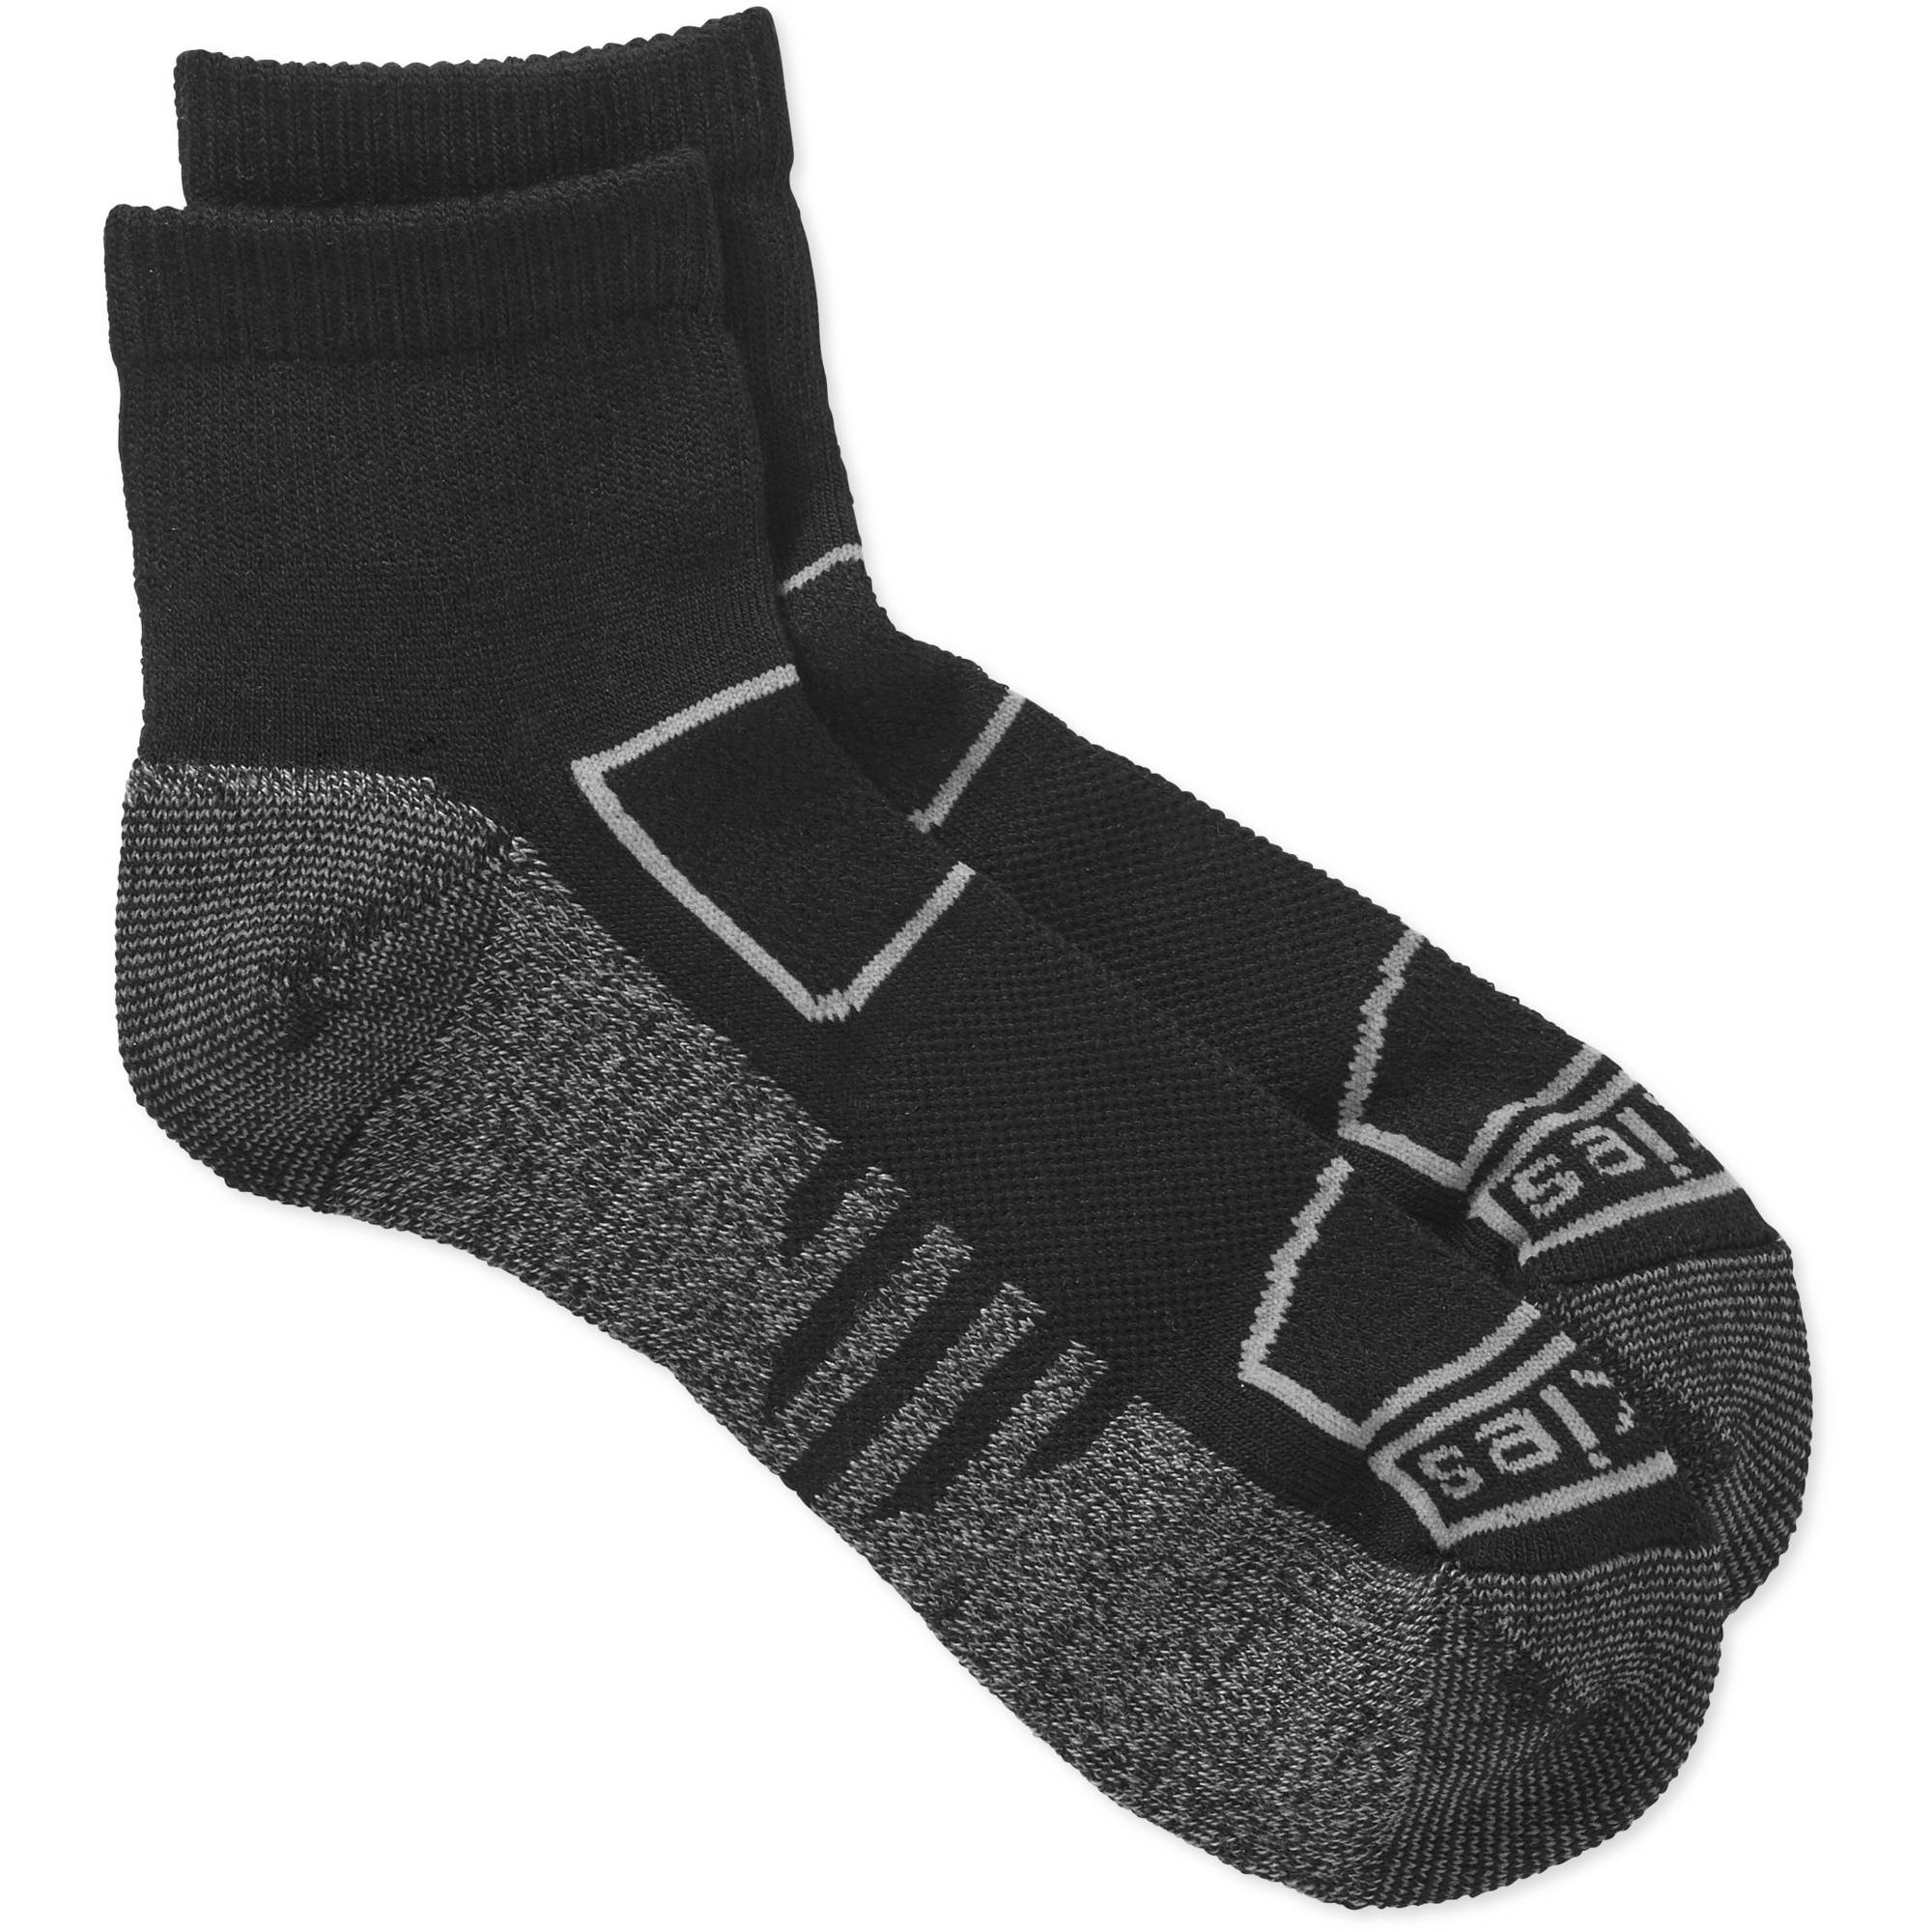 Dickies Men's All Season Lightweight Merino Wool Quarter Sock